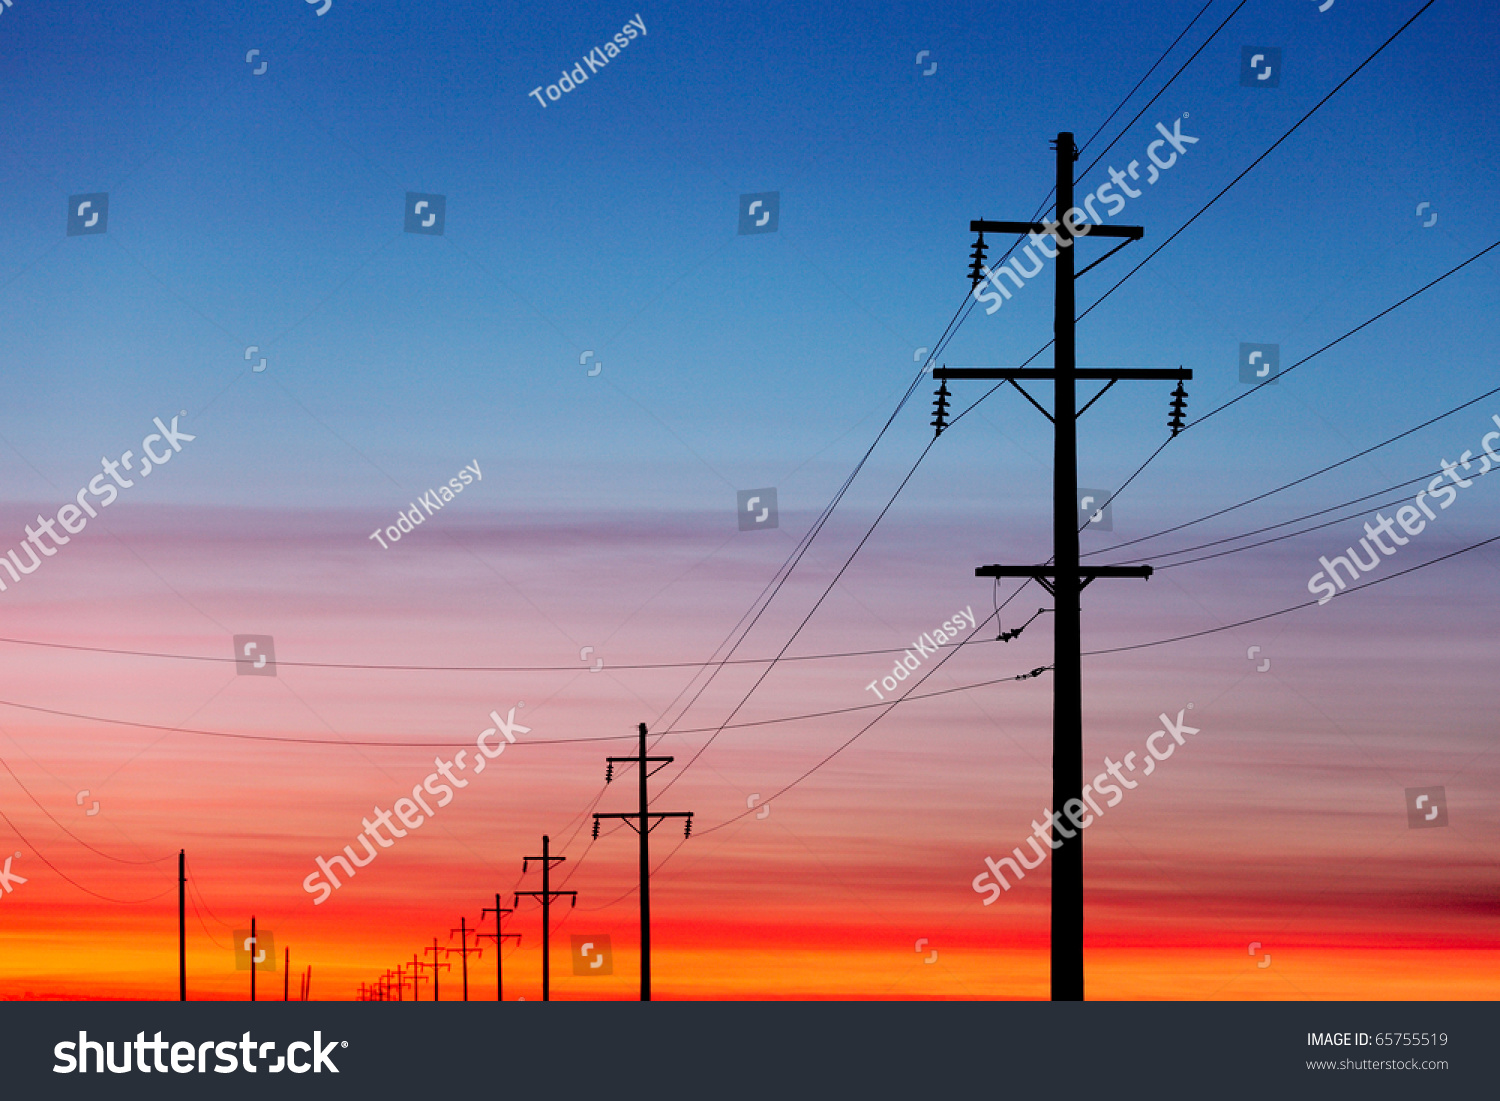 A Silhouette Of High Voltage Power Lines Against A ...